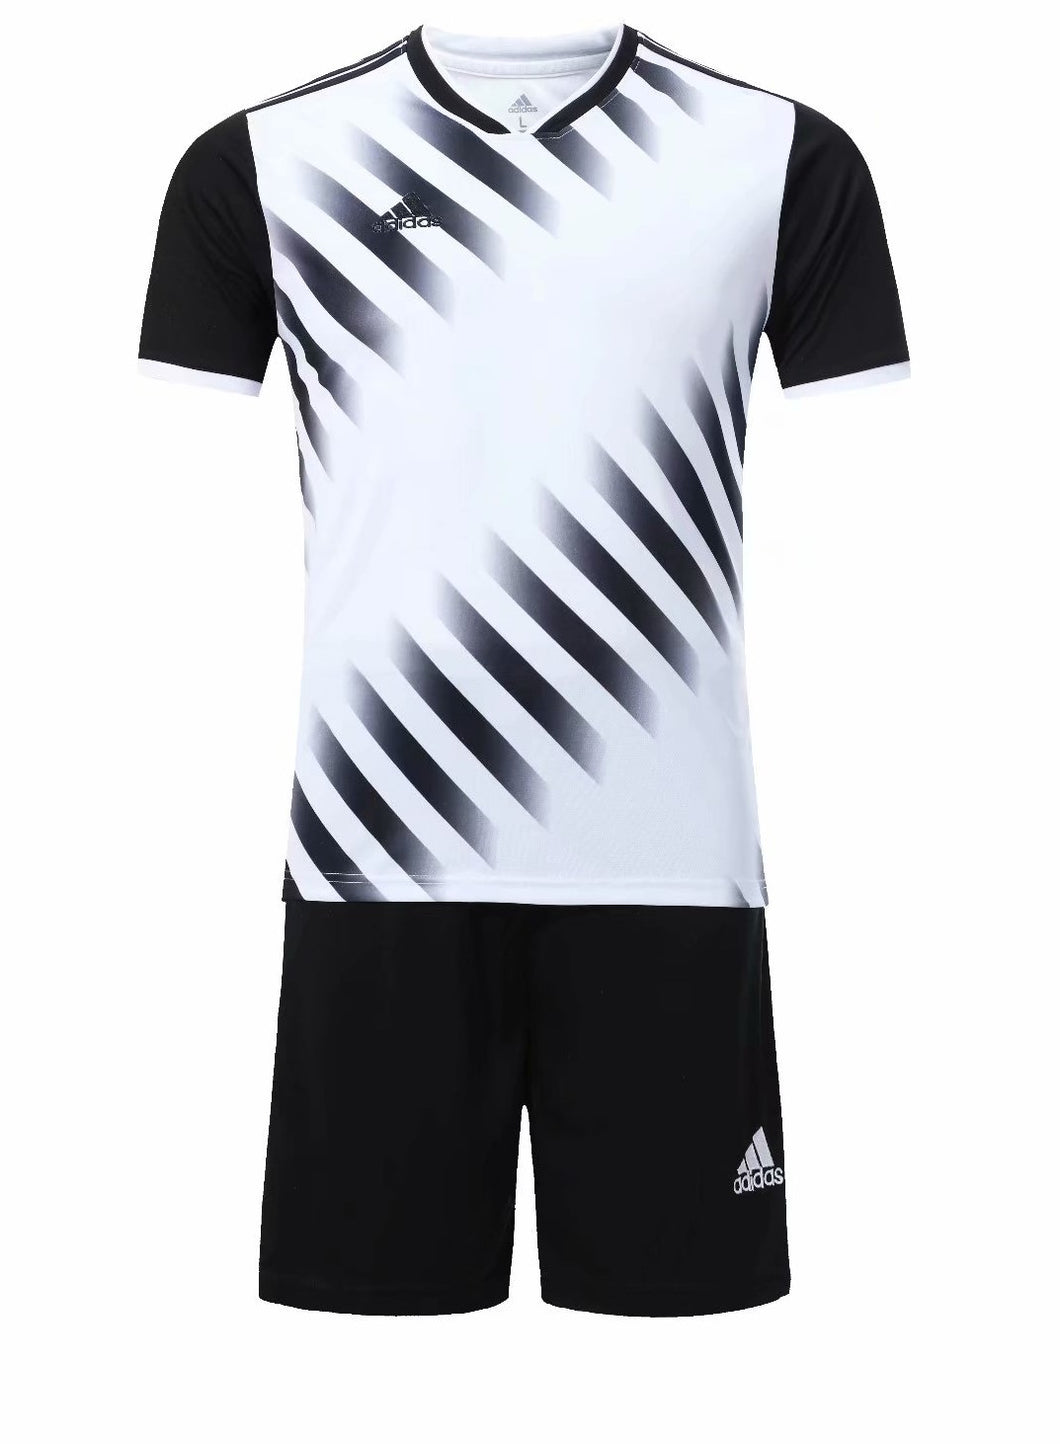 Adidas Full Football Kit Adult Sizes only - Black and White with Faded stripe